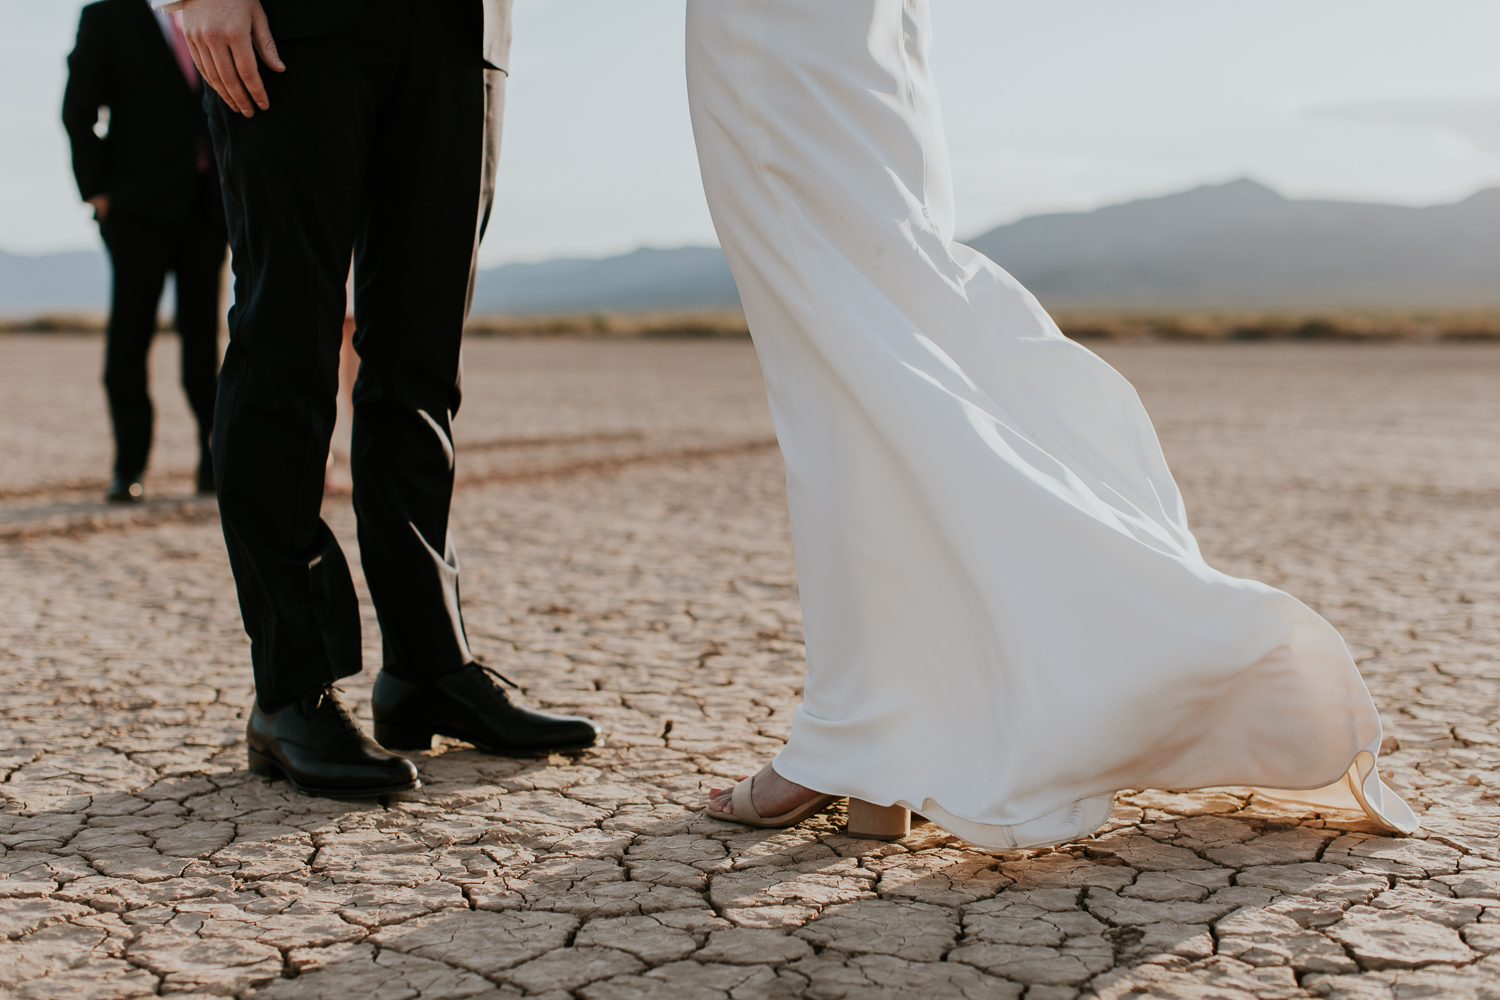 colorado-dry-beds-nevada-elopement-photographer